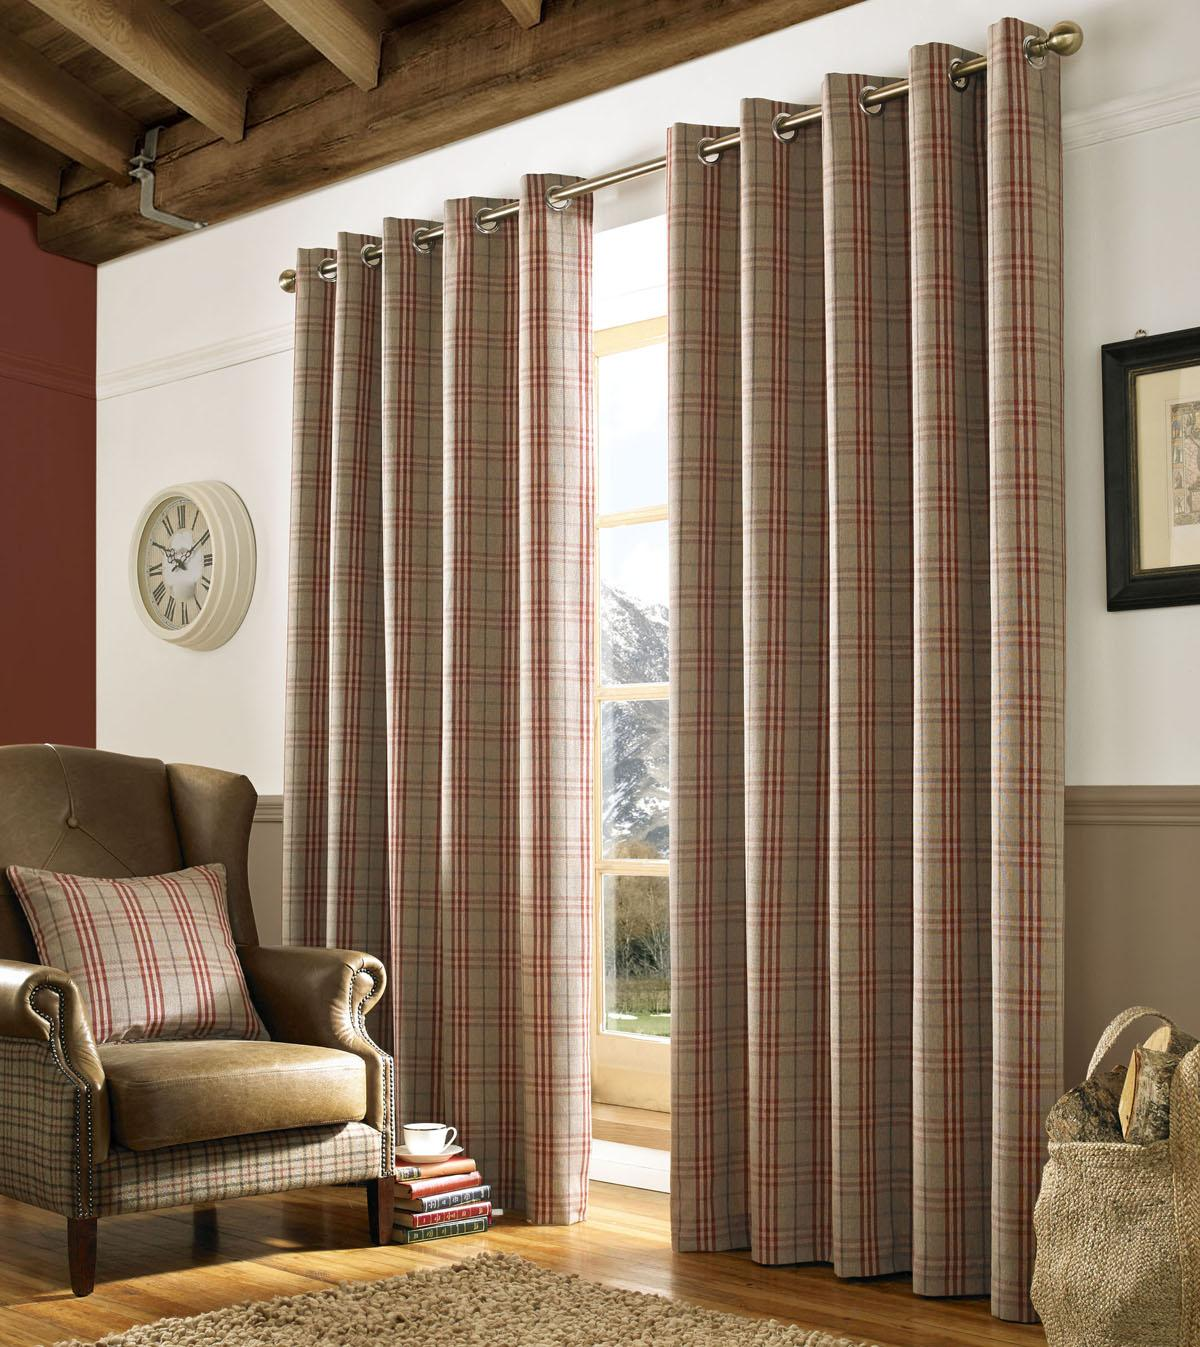 Red Archie Curtain Eyelet Curtains Free UK Delivery Terrys Fabrics - Ready made curtains red